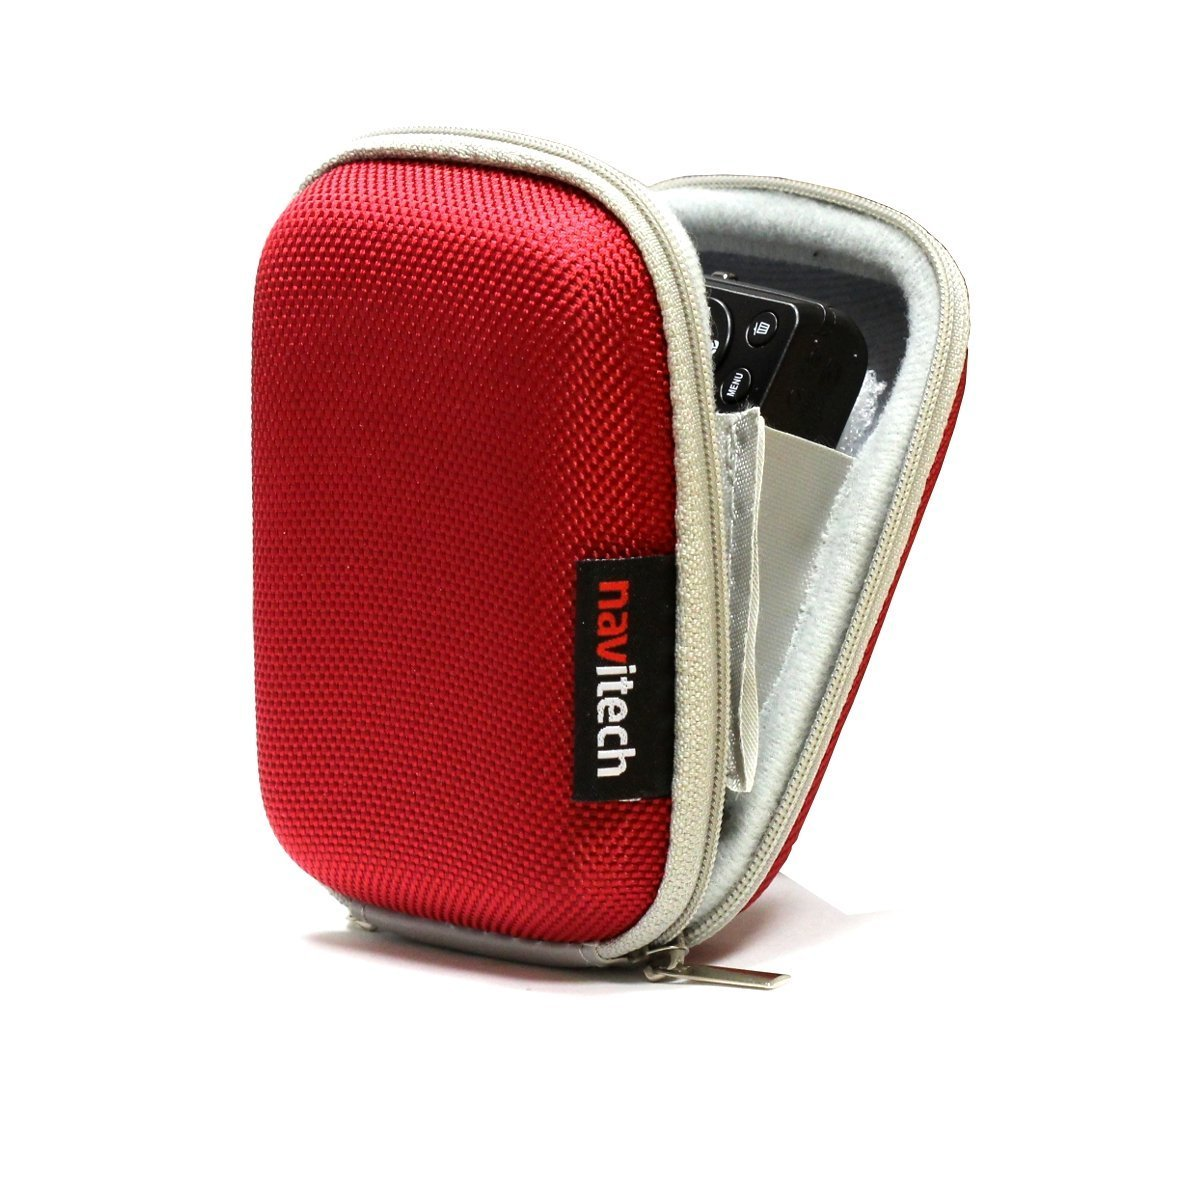 Navitech Red Water Resistant Hard Digital Camera Case Cover Compatible With The Kodak Pixpro FZ53